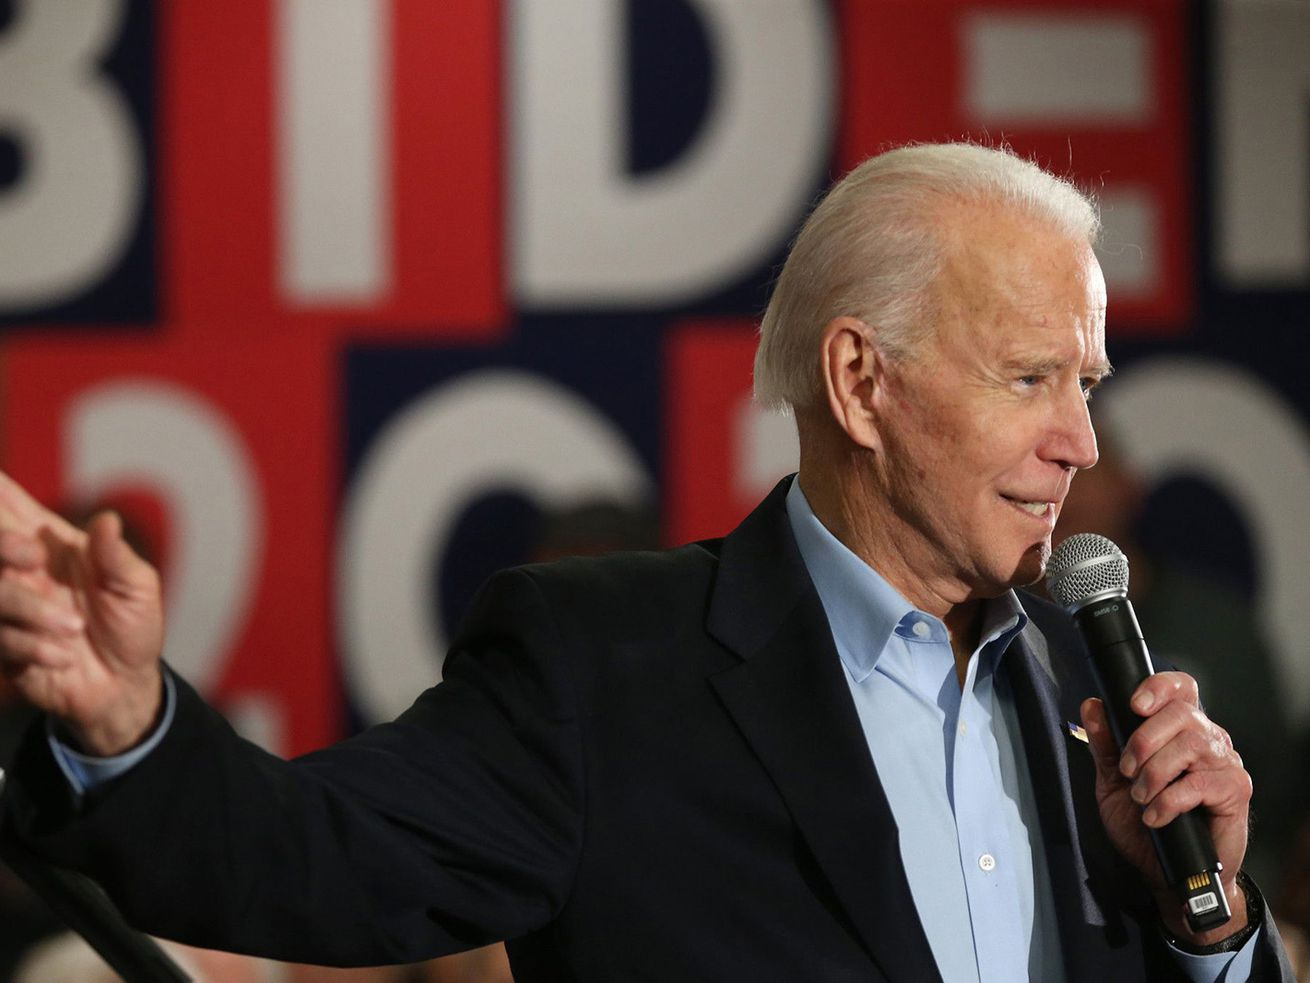 """Biden, in a dark suit, and tieless in a blue button down shirt, gestures as he speaks into a microphone. Behind him, in white letters against a red and blue tiled background, are the words """"Biden 2020."""""""